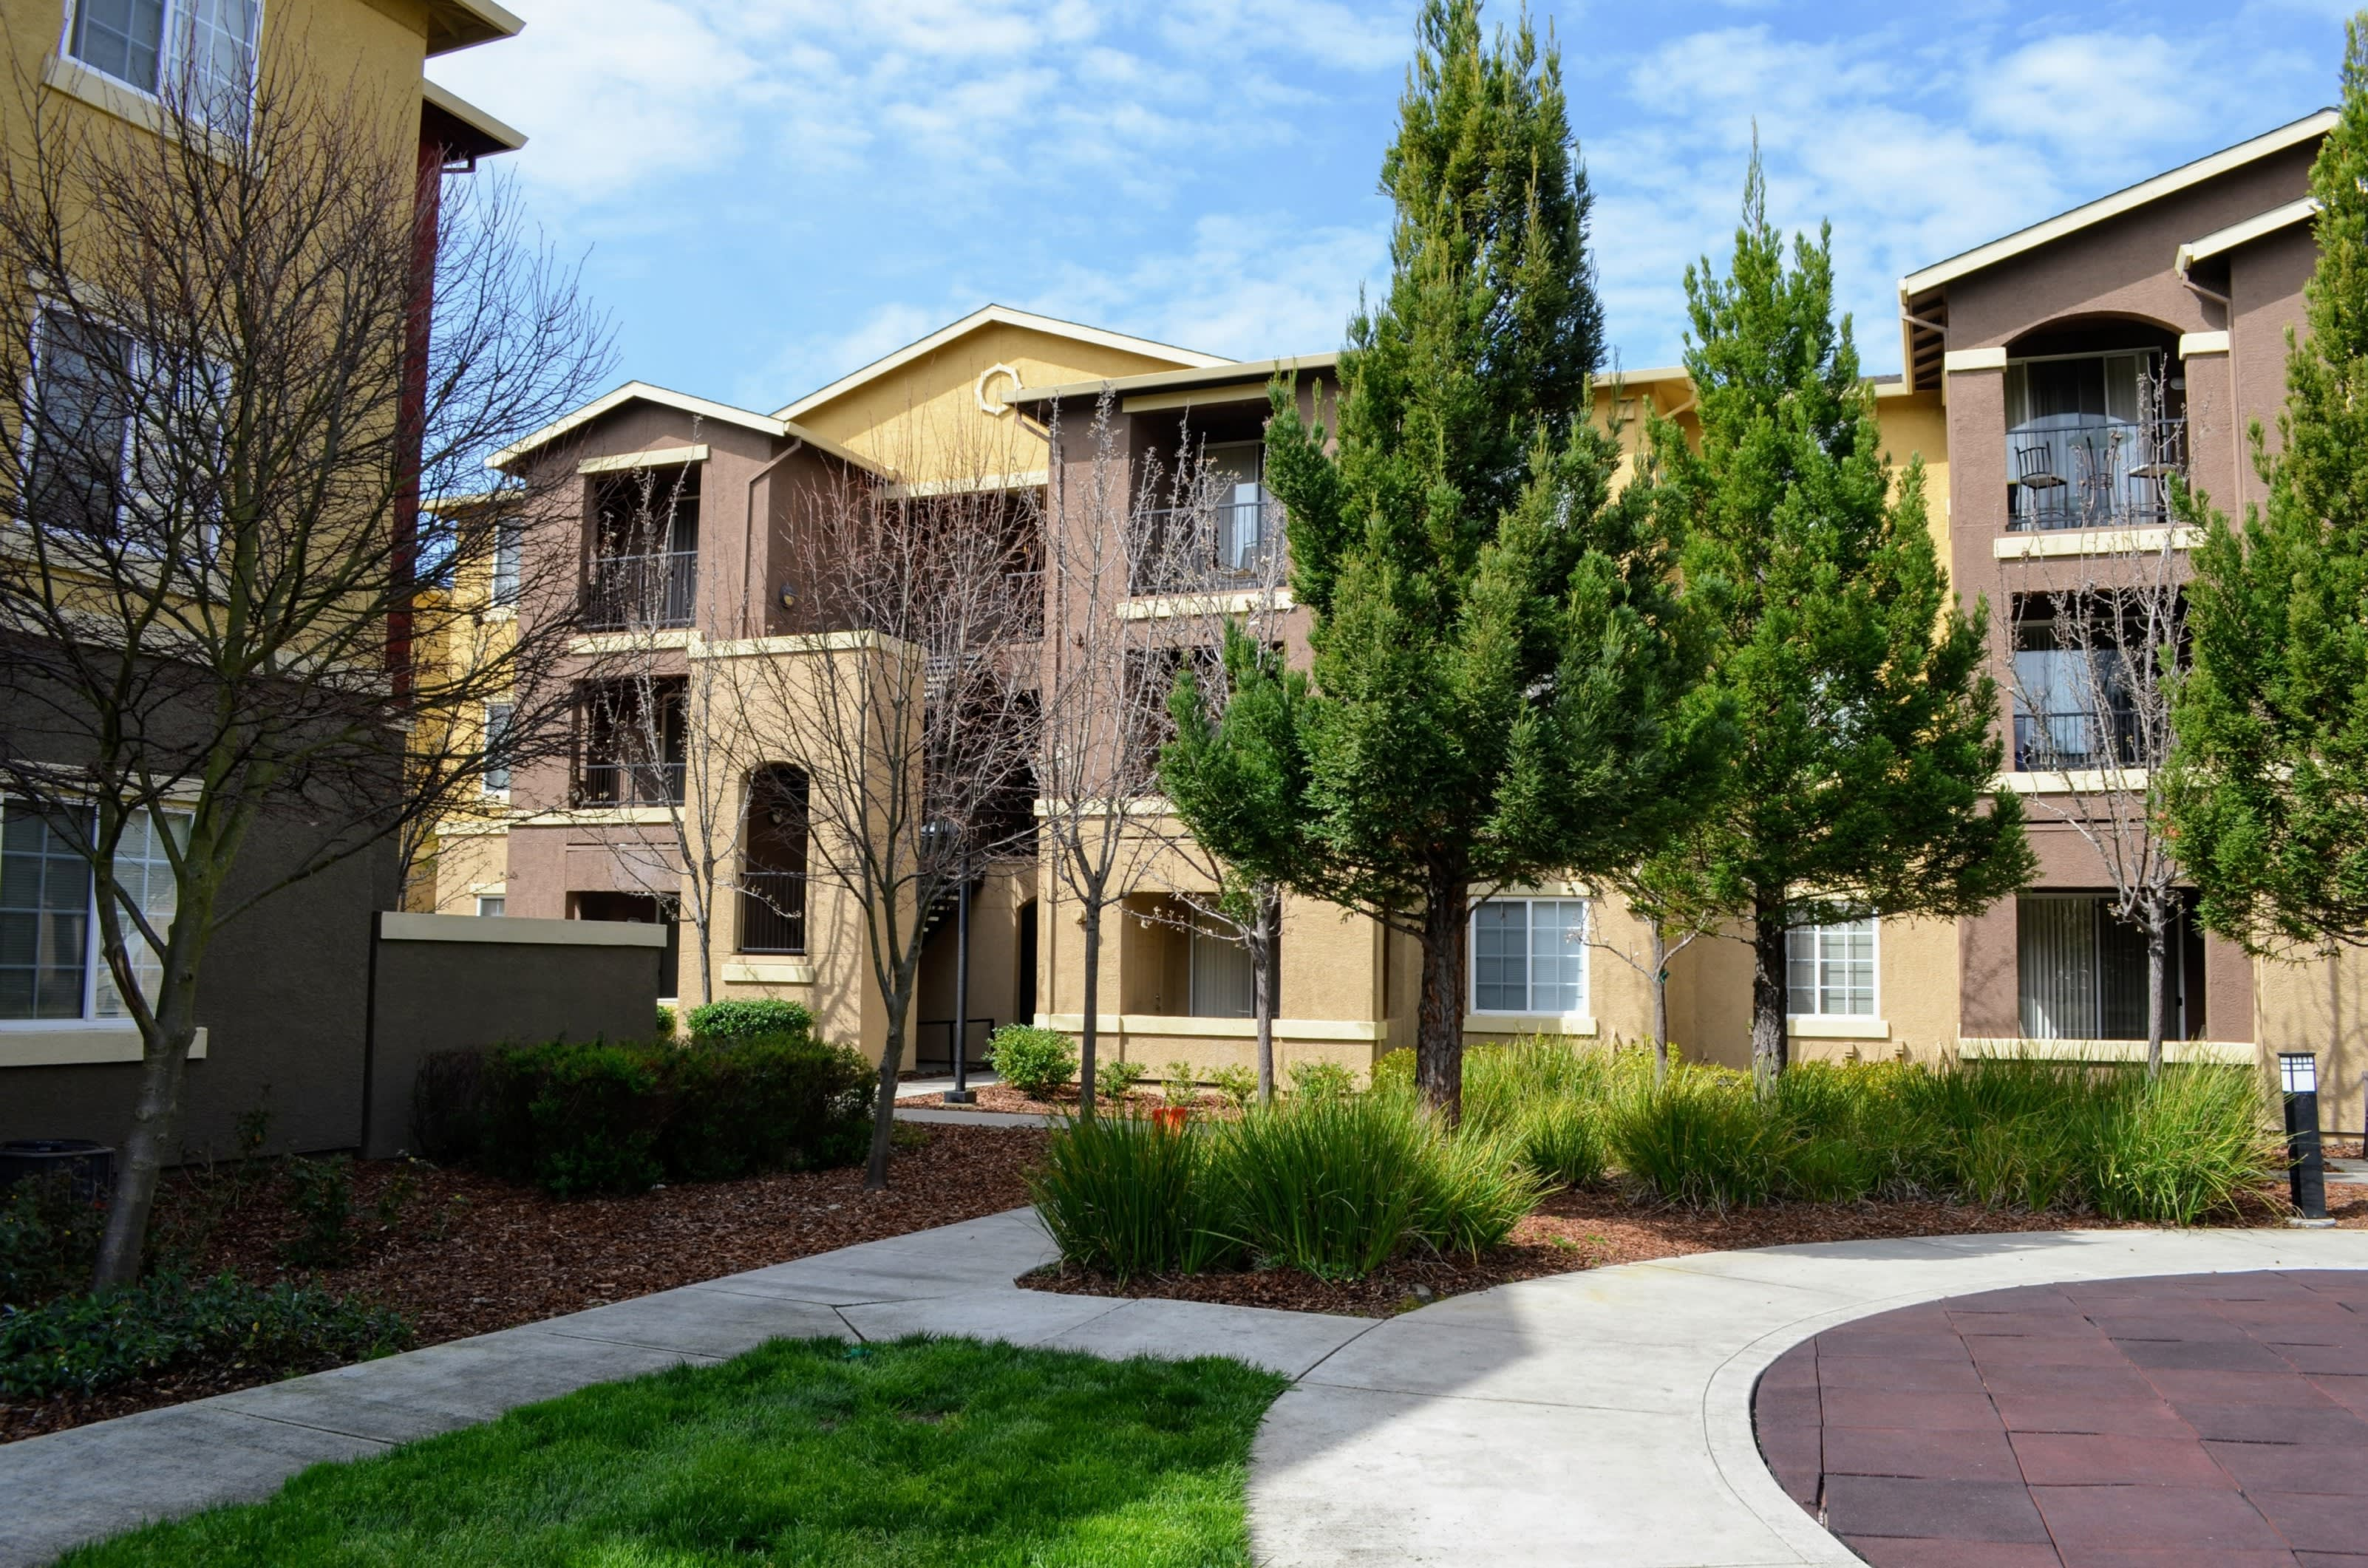 Meticulous Landscaping at Sterling Village Apartment Homes, Vallejo, CA